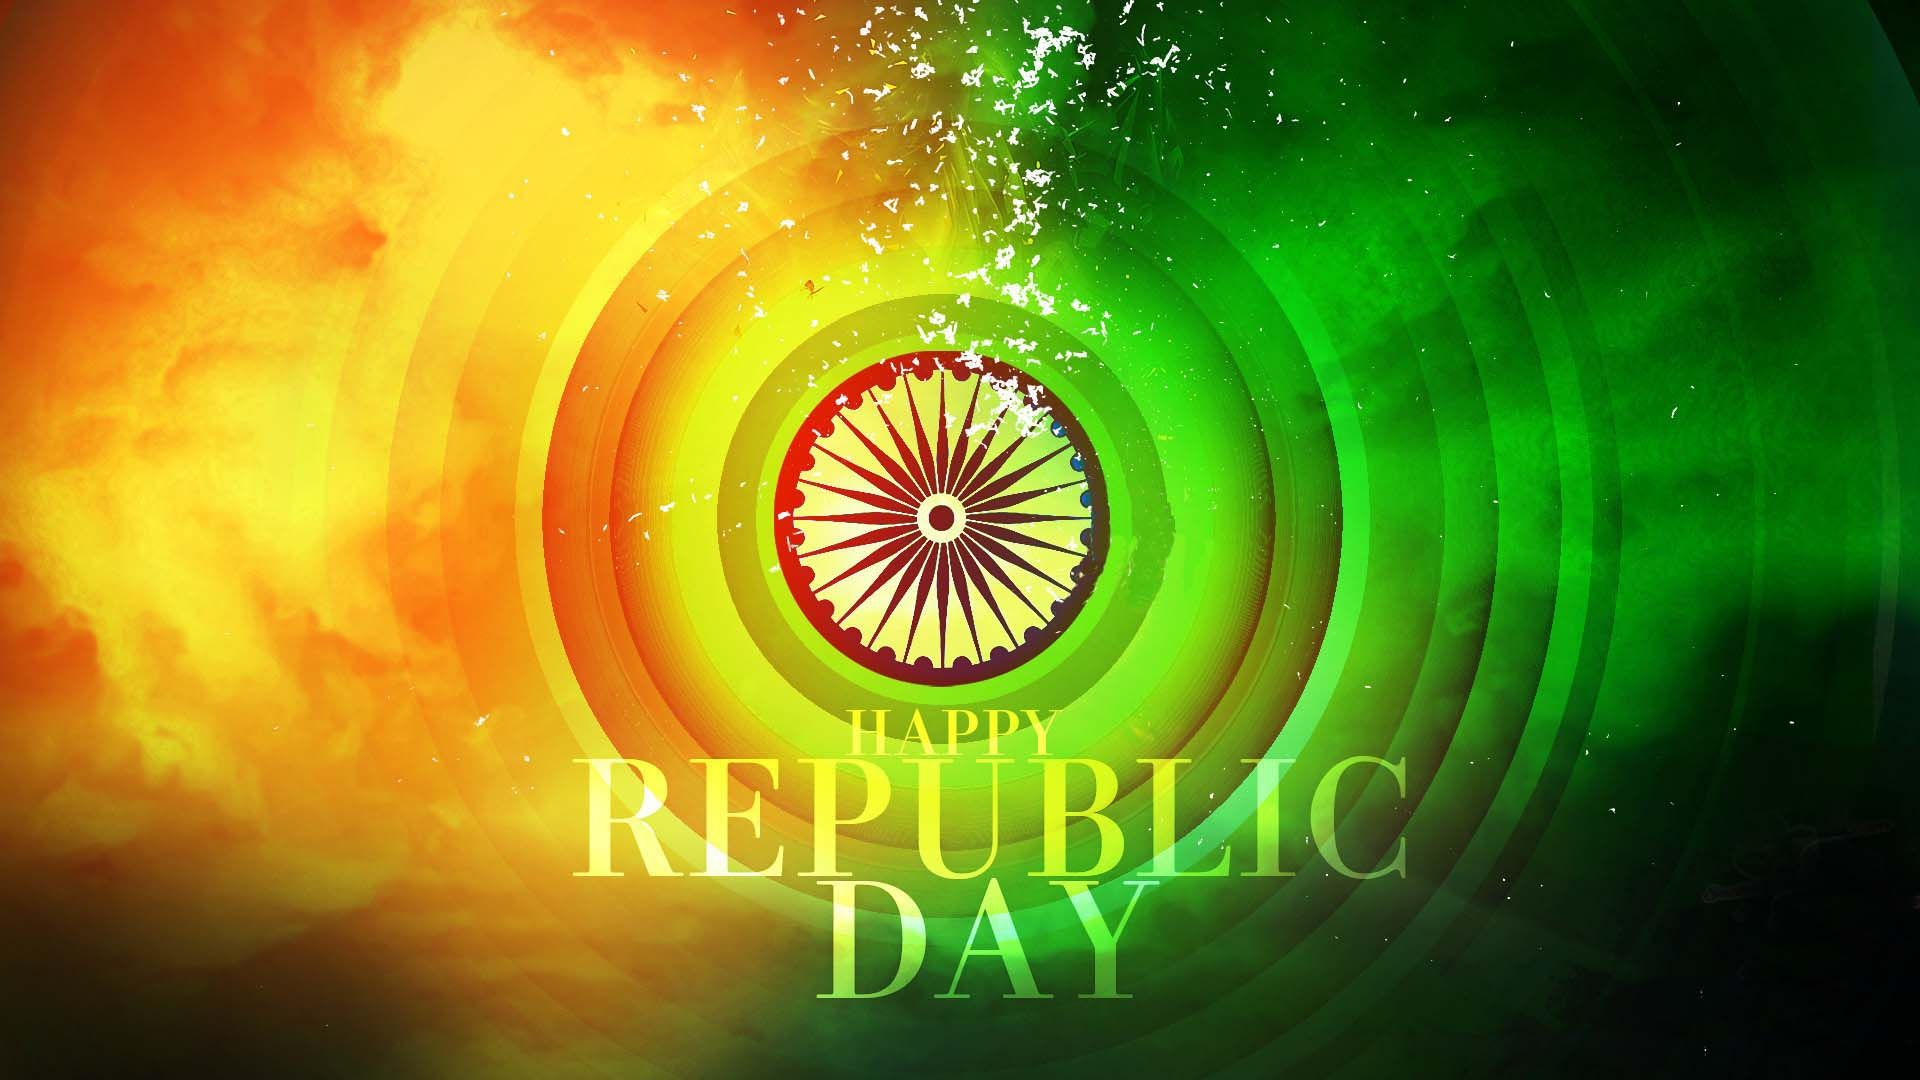 Happy Republic Day Images Wallpapers 26th January 2018 Hd Photos